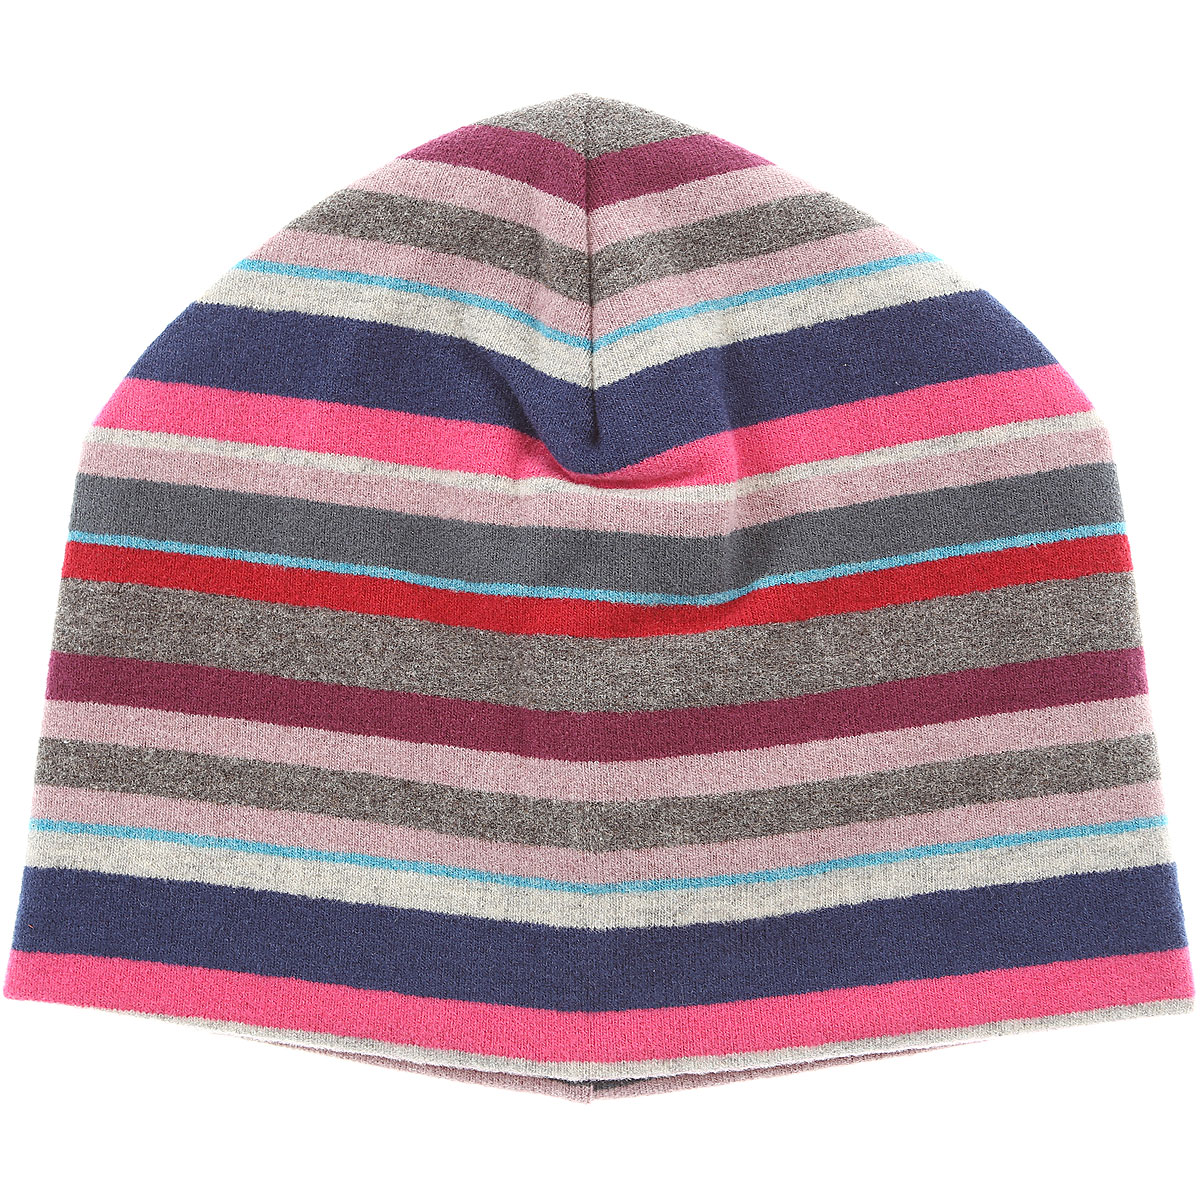 Gallo Baby Hats for Girls On Sale in Outlet, Grey, Cotton, 2019, 11M 6M